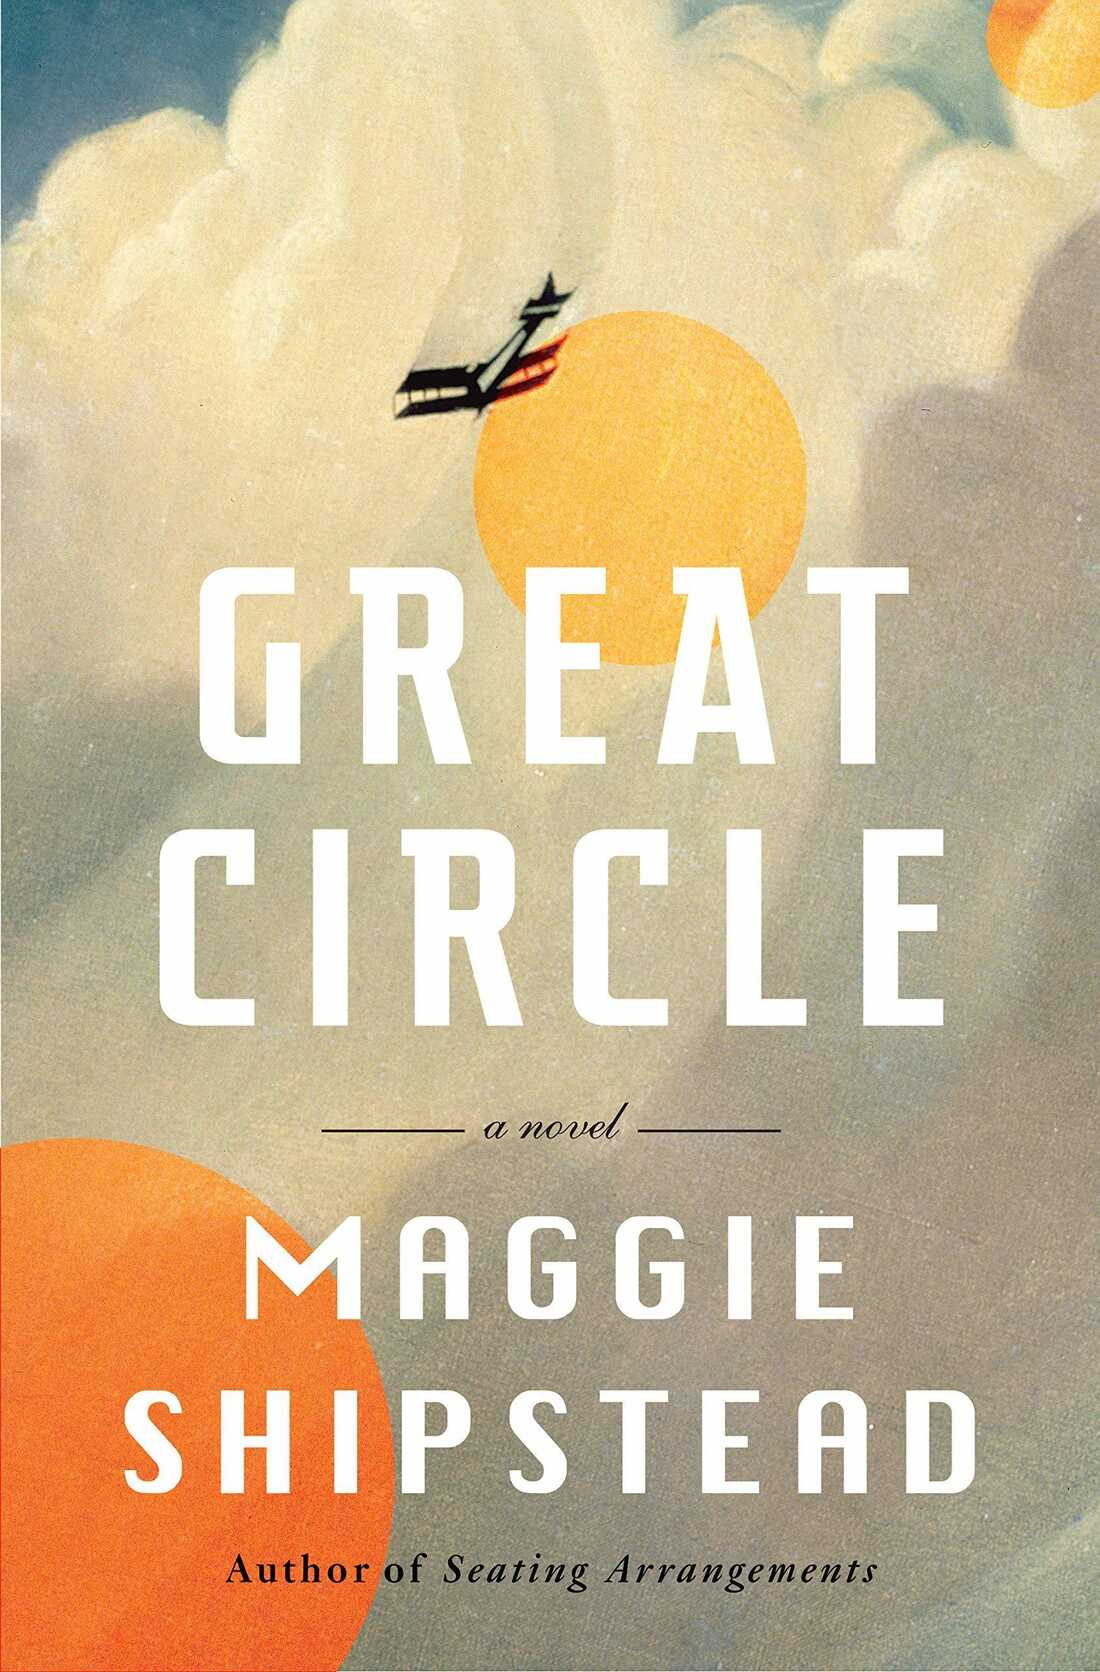 Great Circle, by Maggie Shipstead